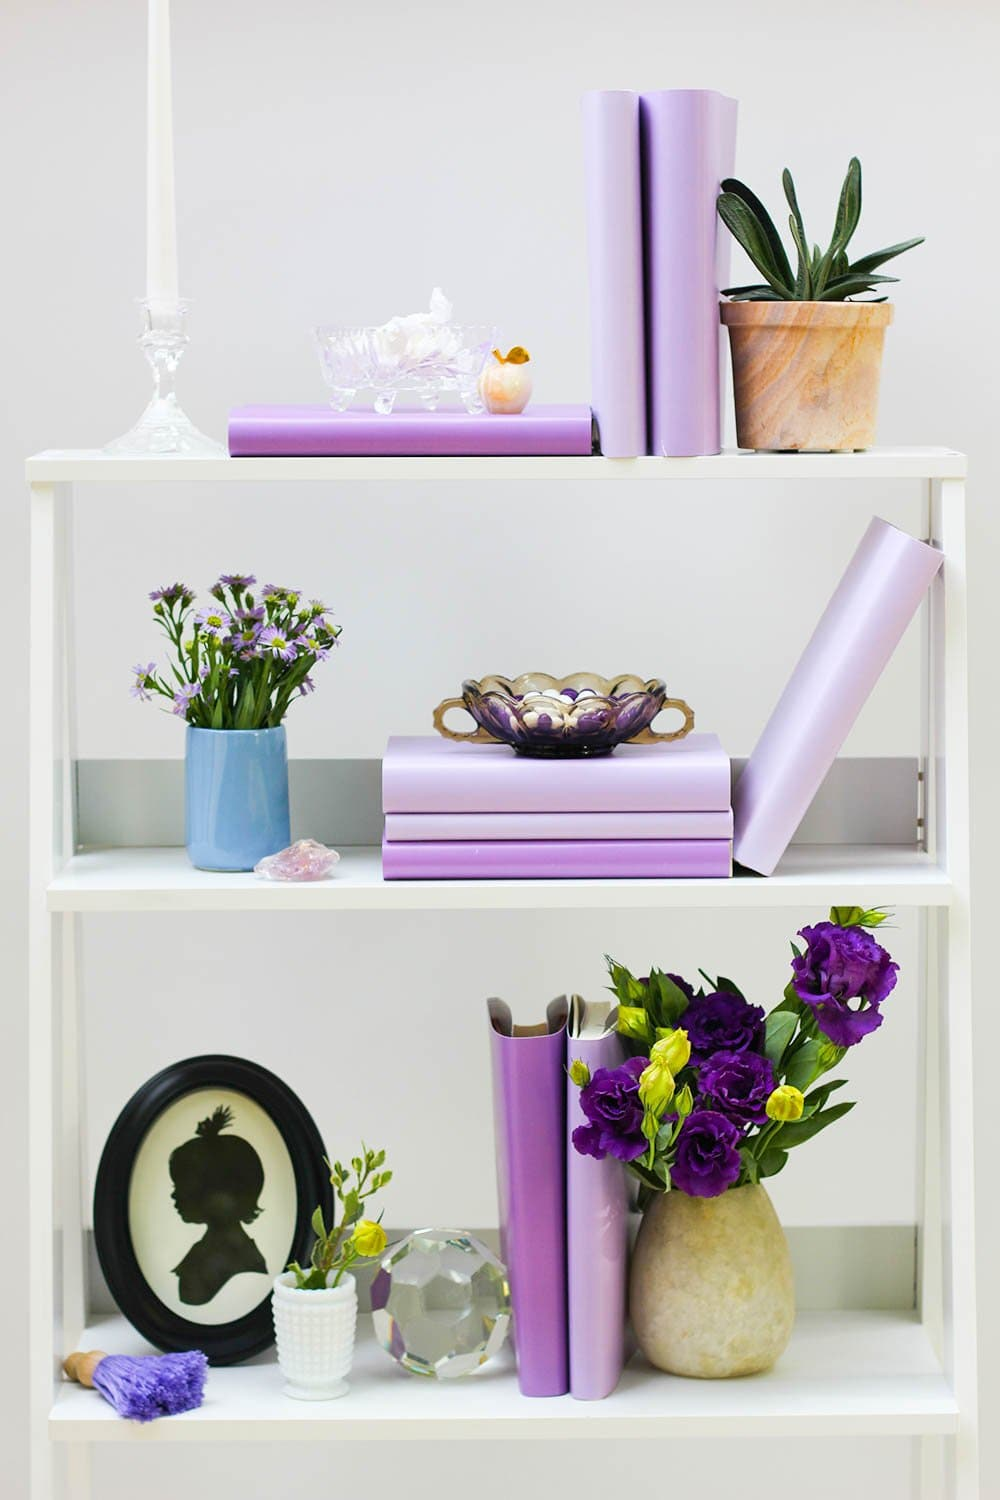 Styled purple book shelf with purple books from purple book covers